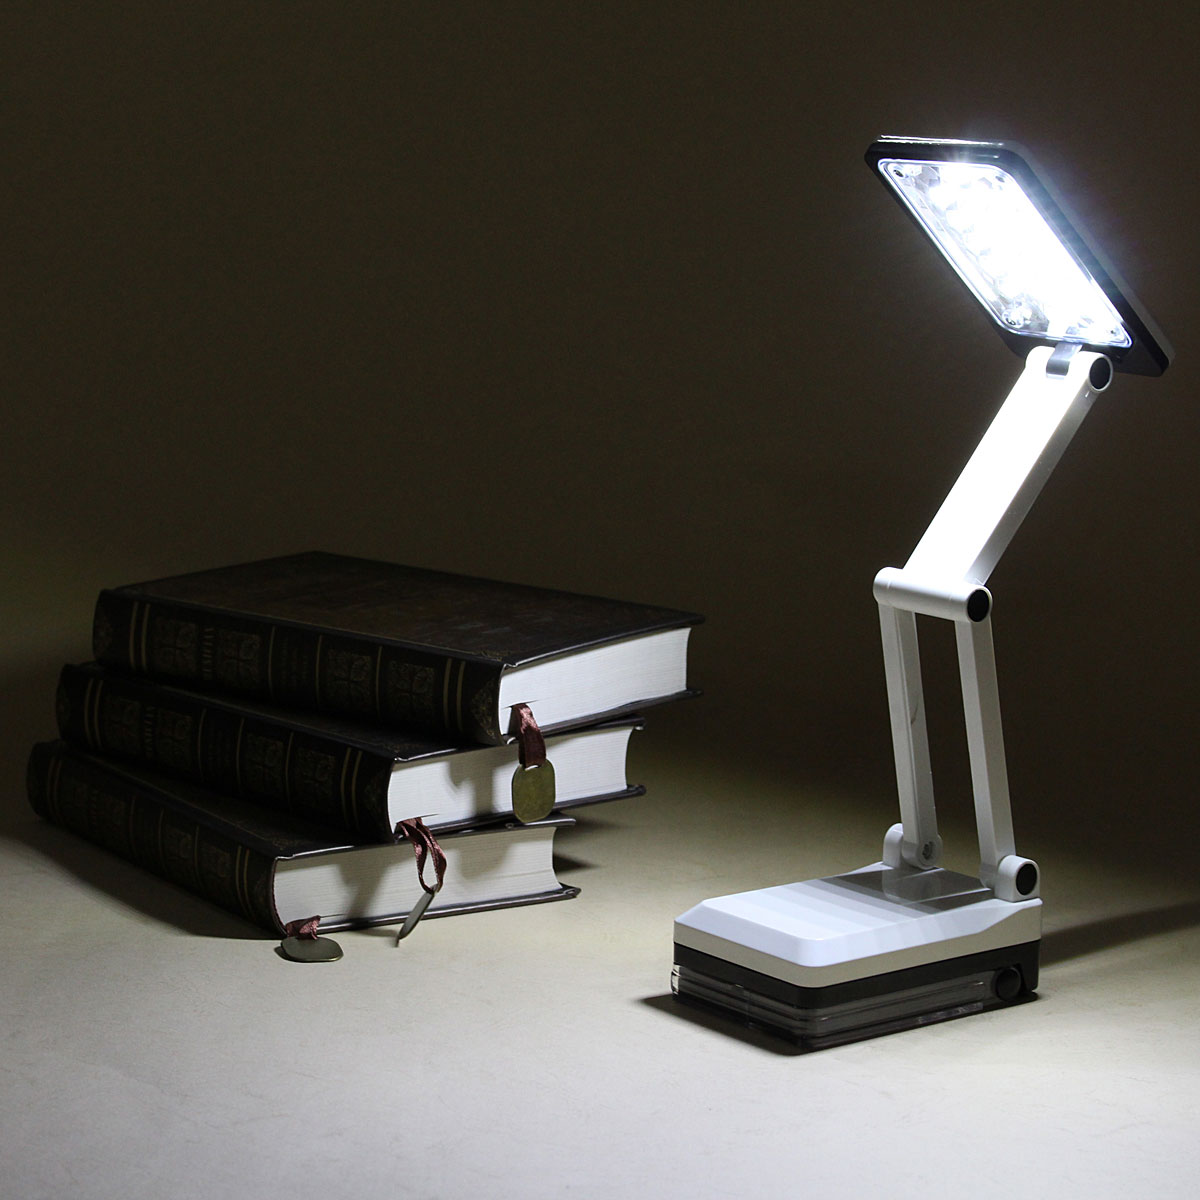 Portable Eye Protection Led Foldable Rechargeable Study